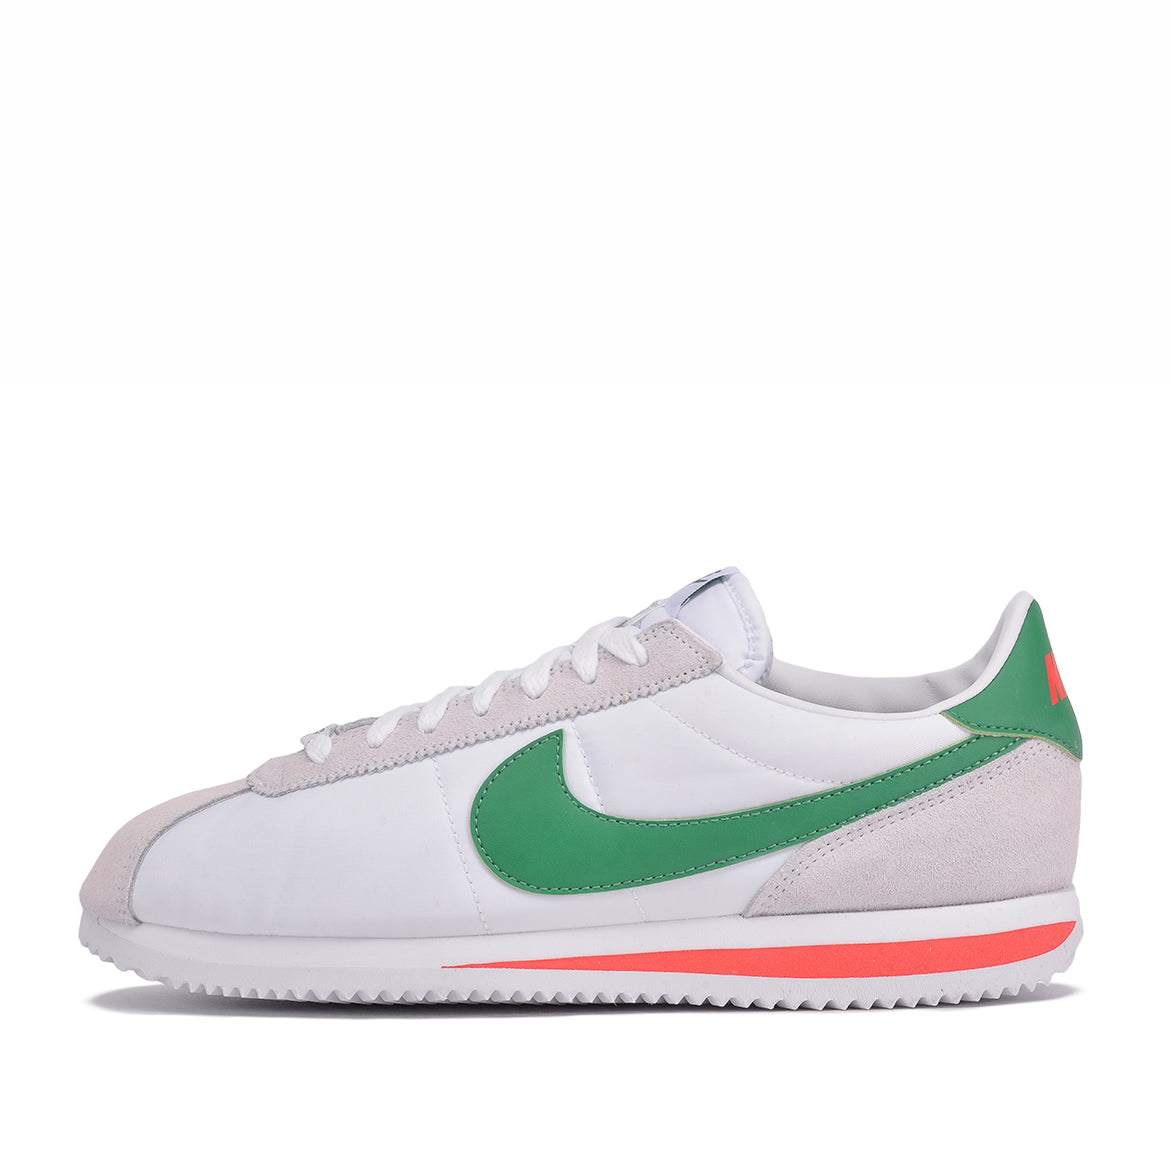 size 40 d5f3b 1fe0e MEXICO Clothing, Shoes   Accessories NIKE CORTEZ BASIC NYLON SUEDE 819720  103 WHITE PINE GREEN HABANERO RED